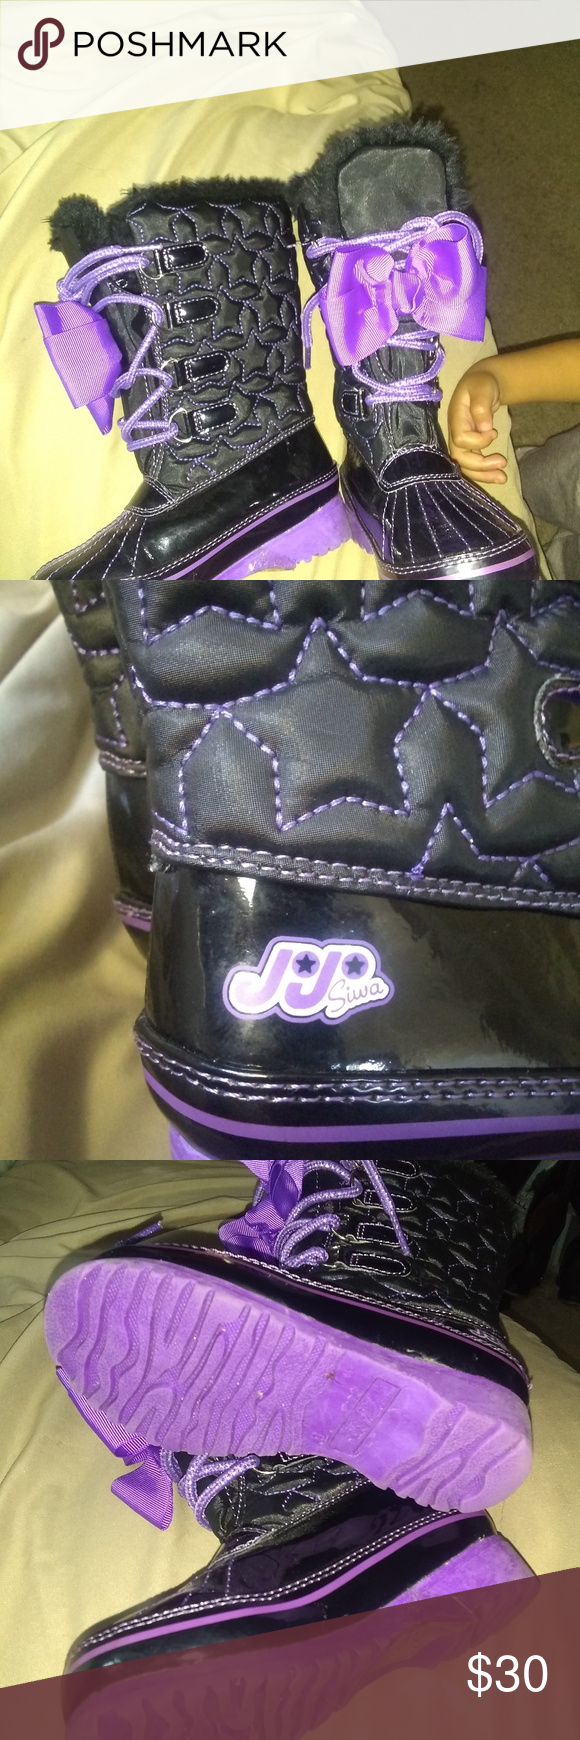 boots Winter boots purple and black